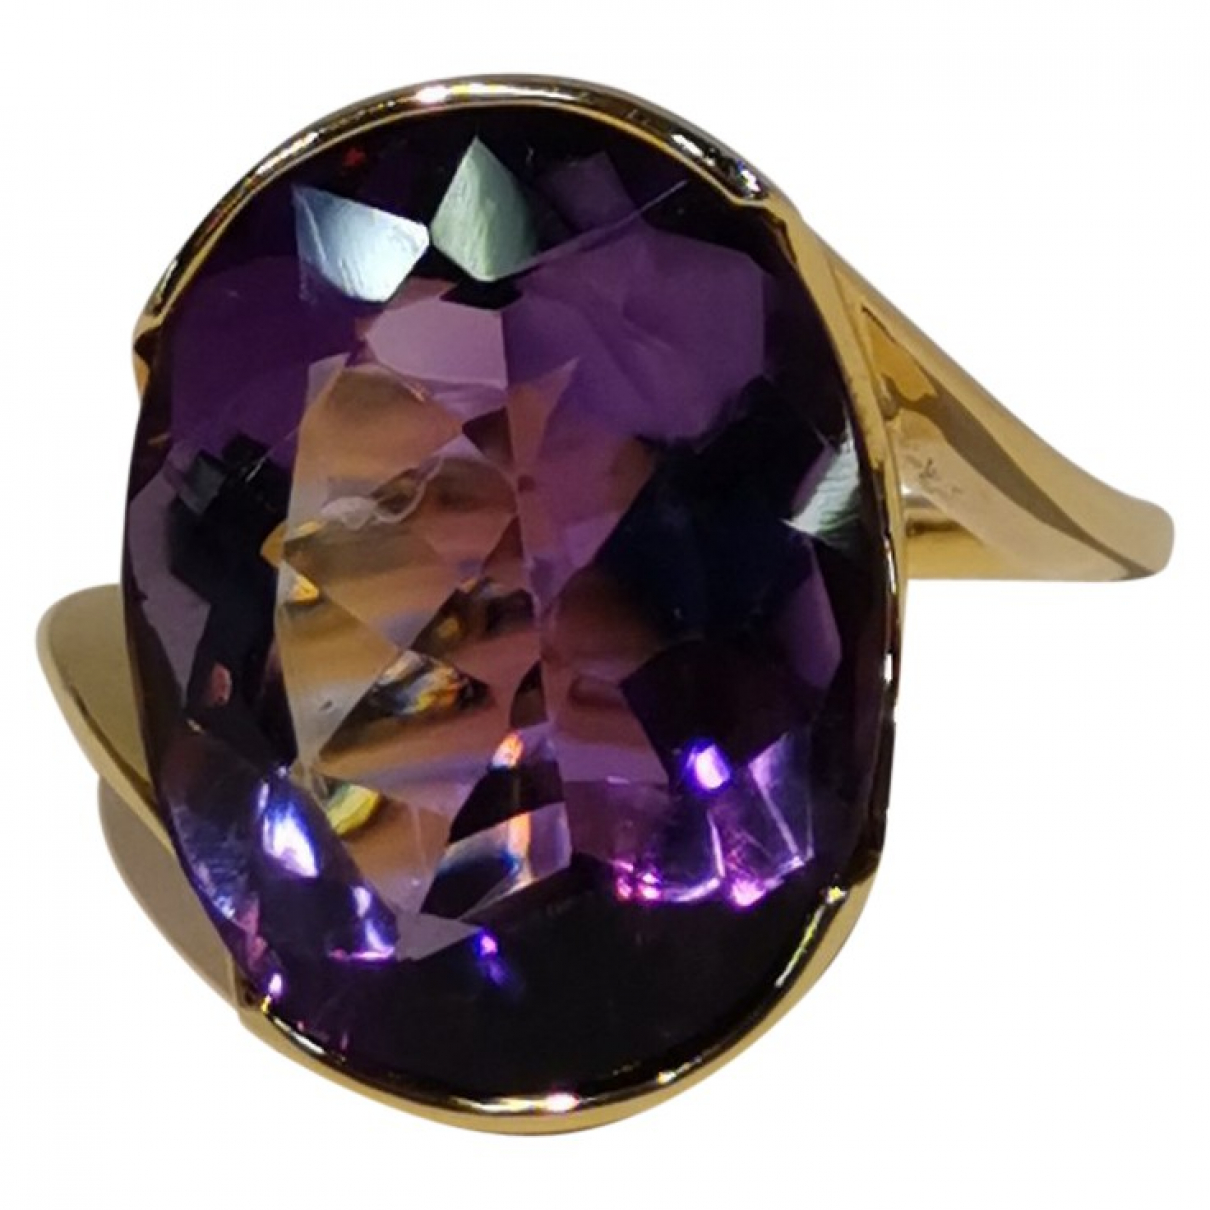 Non Signe / Unsigned Amethyste Ring in  Gelb Gelbgold